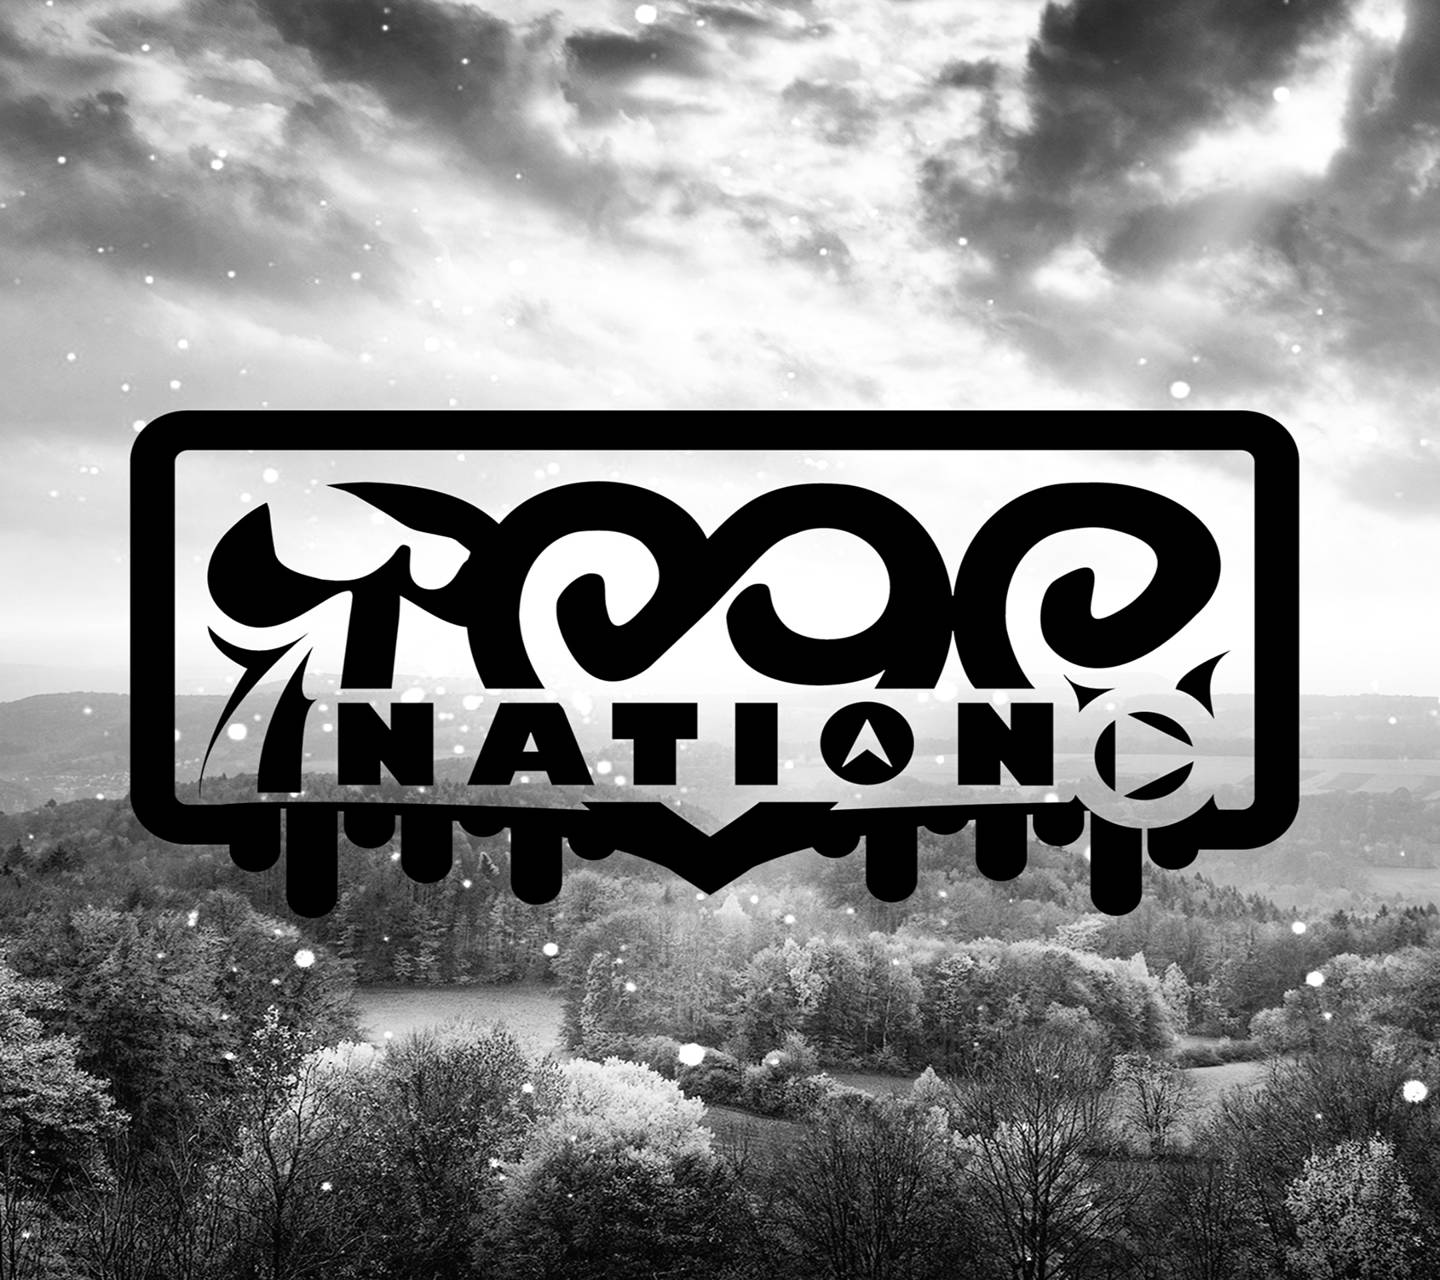 Trap Nation Wallpaper By Thuglife47